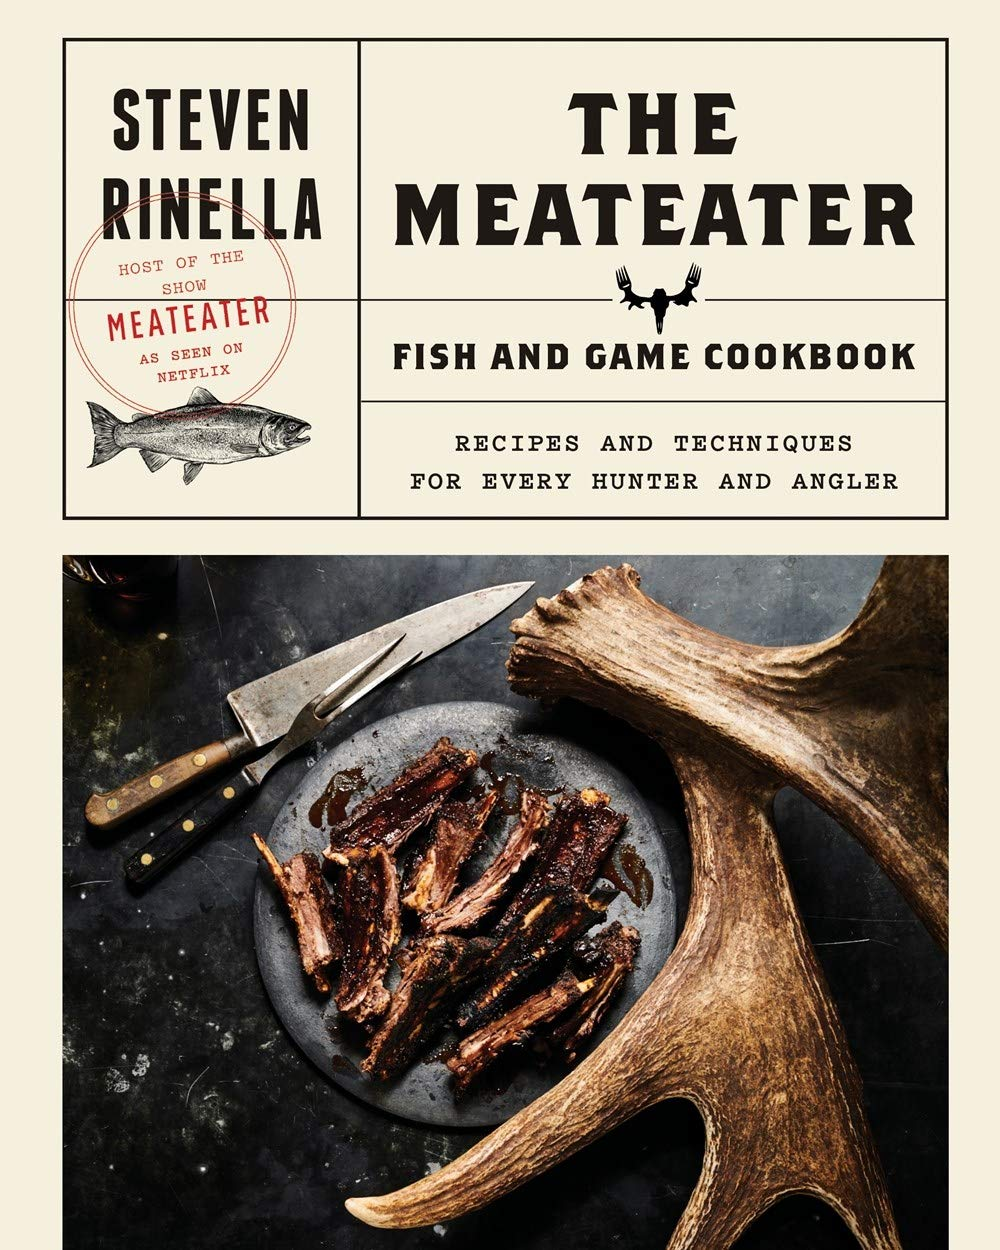 The MeatEater Fish and Game Cookbook: Recipes and Techniques for Every Hunter and Angler by Spiegel & Grau